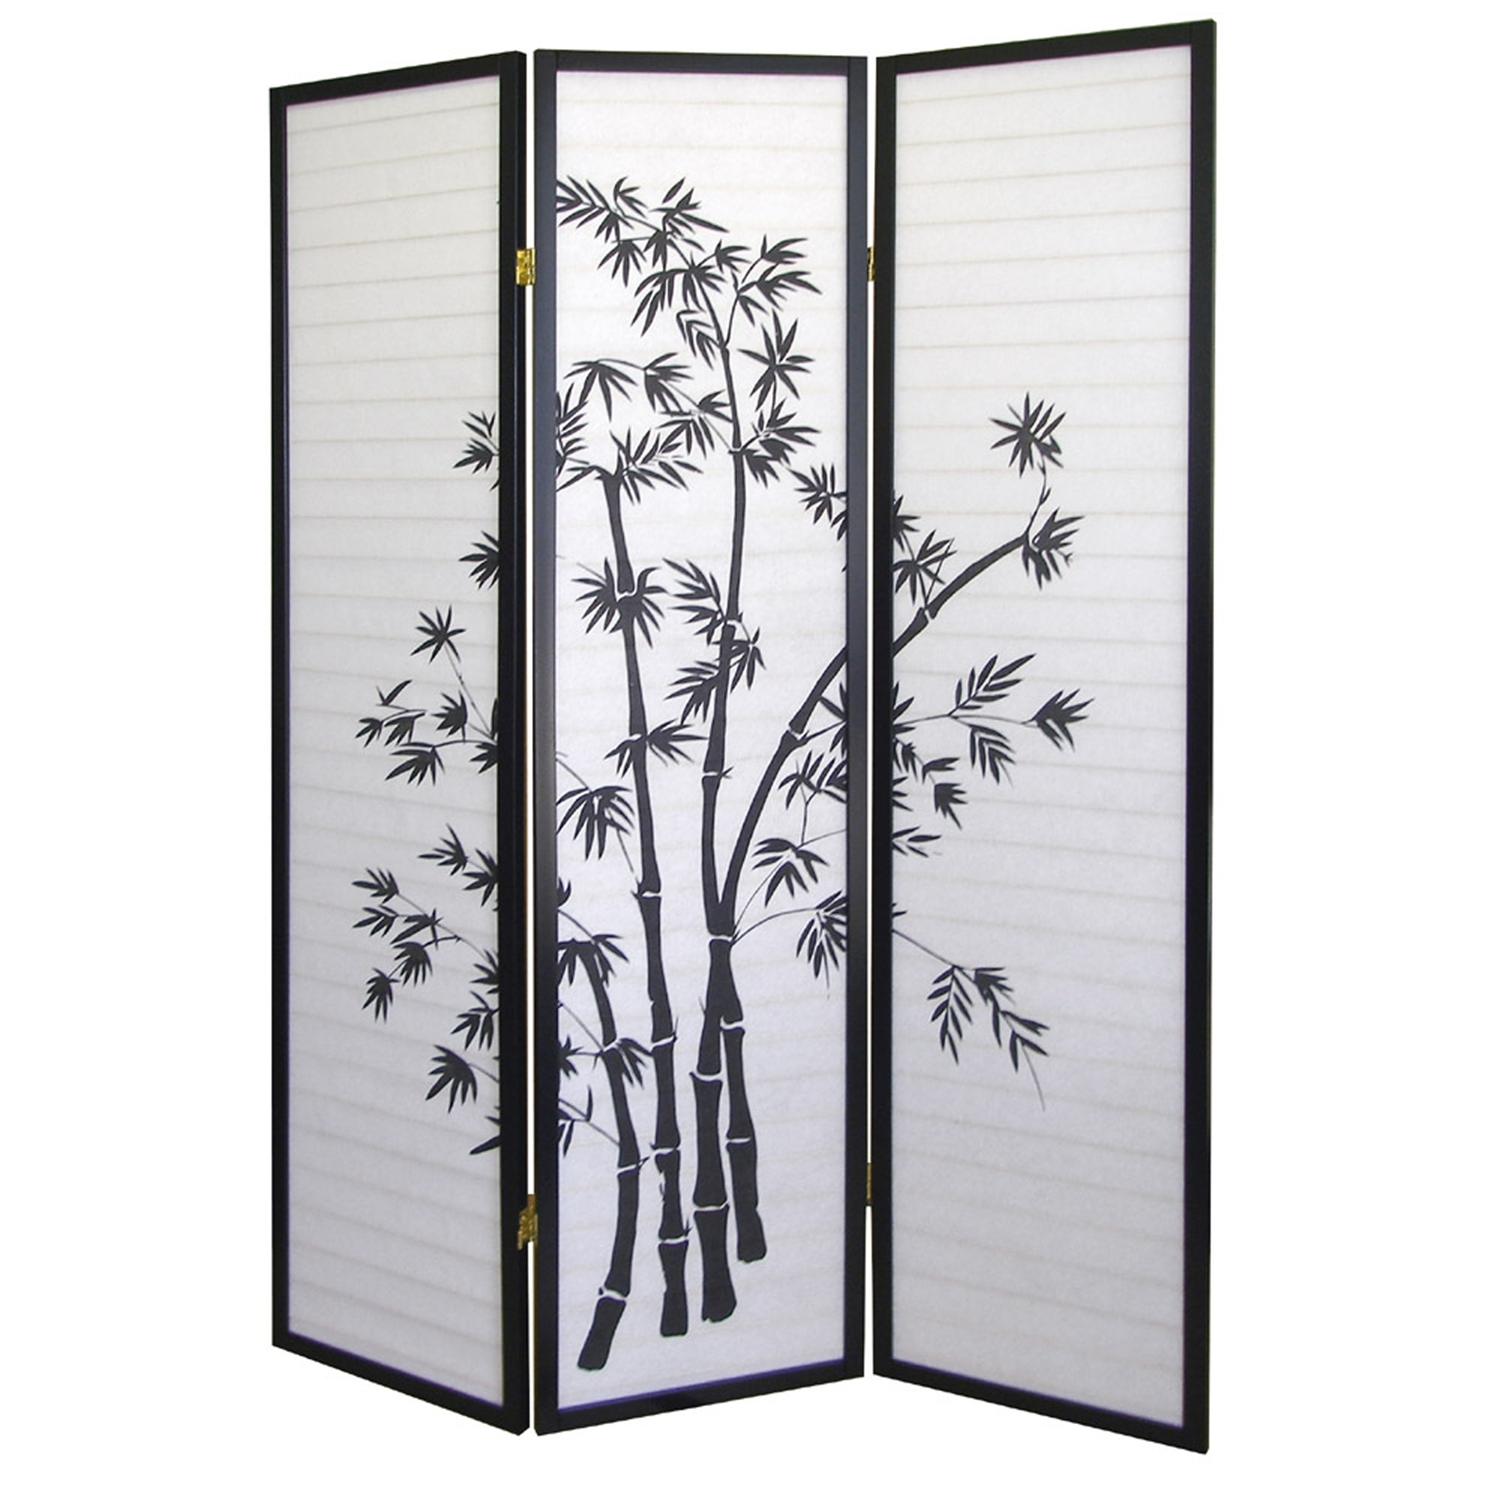 3-Panel Room Divider Privacy Screen with Bamboo Design Black White,  BWRD7905 :  This 3-Panel Room Divider Privacy Screen with Bamboo Design Black White would be a great addition to your home. It has a black finish and can create privacy, add texture or define a space with this handsome room divider. Frame material: Wood; Paper Panel features lovely bamboo silhouettes; Folds flat for easy storage; Black finish; Product Type: Folding; Style: Art print; Asian/Shoji; Theme: Asian; Floral; Color: 1: Black; Color: 2: Grey; Primary Material: Wood. Photo Display Included: No; Shelves Included: No; Number of Panels: 3; Blinds Included: No ; Hand Carved: No; Hand Painted: No; Outdoor Use: No; Country of Manufacture: China.